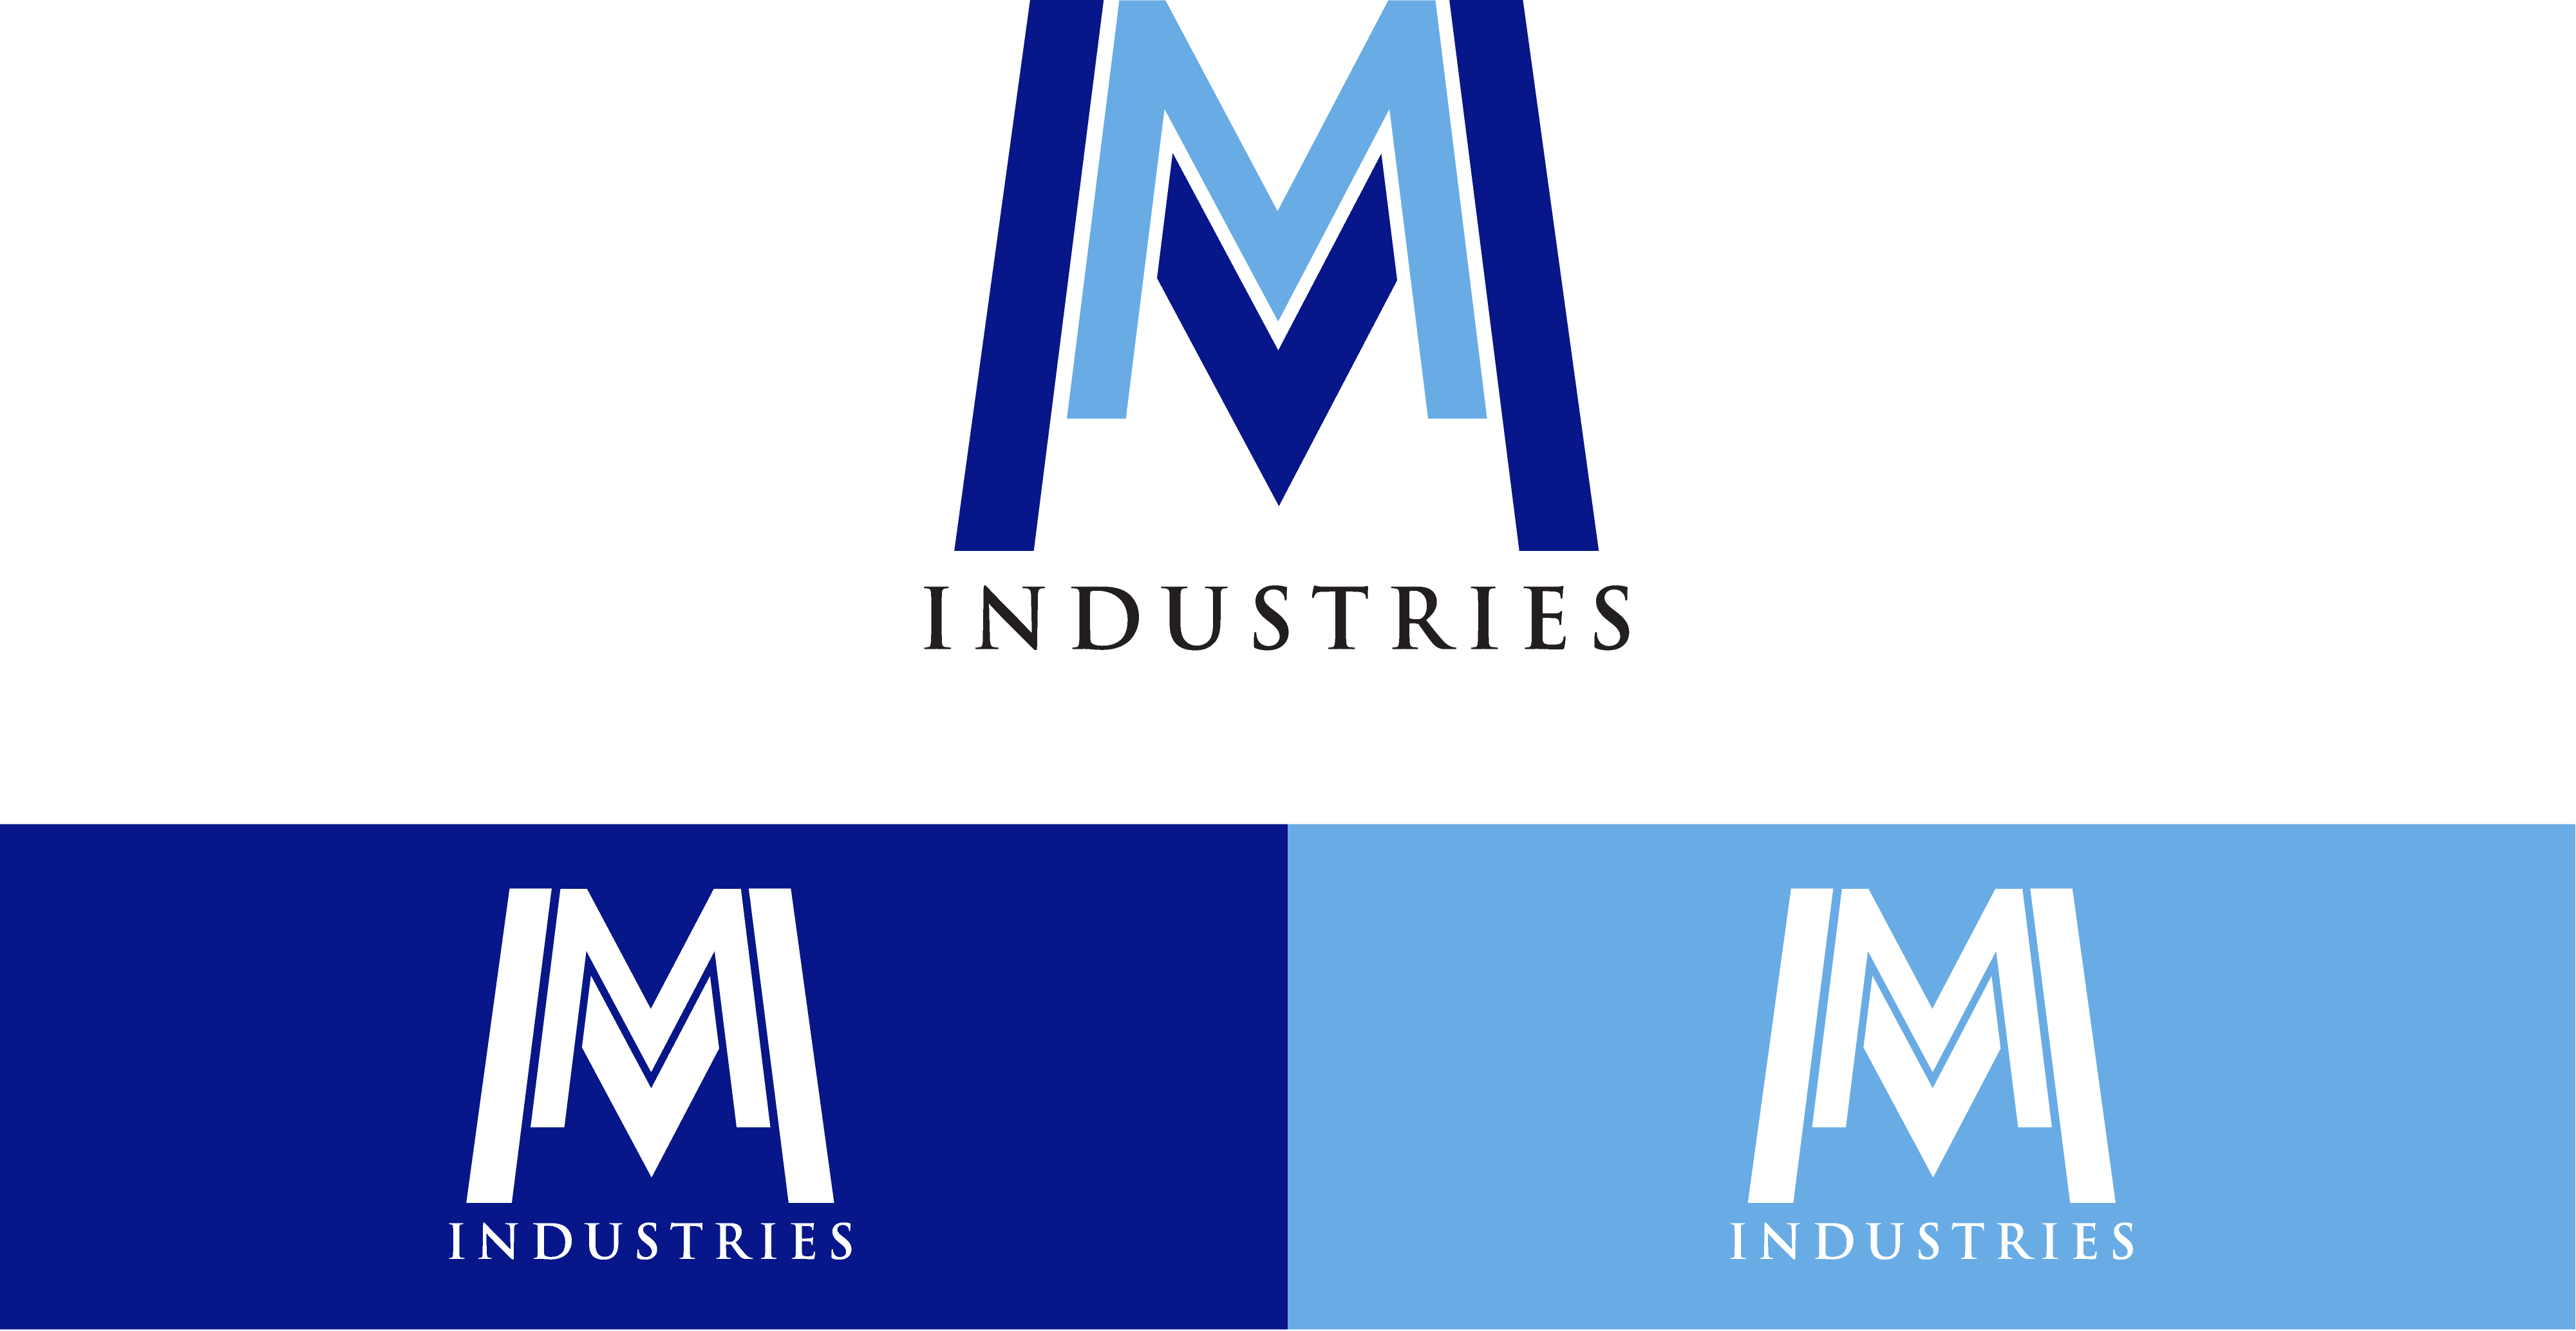 Logo, Branding, Design for Manufacturing